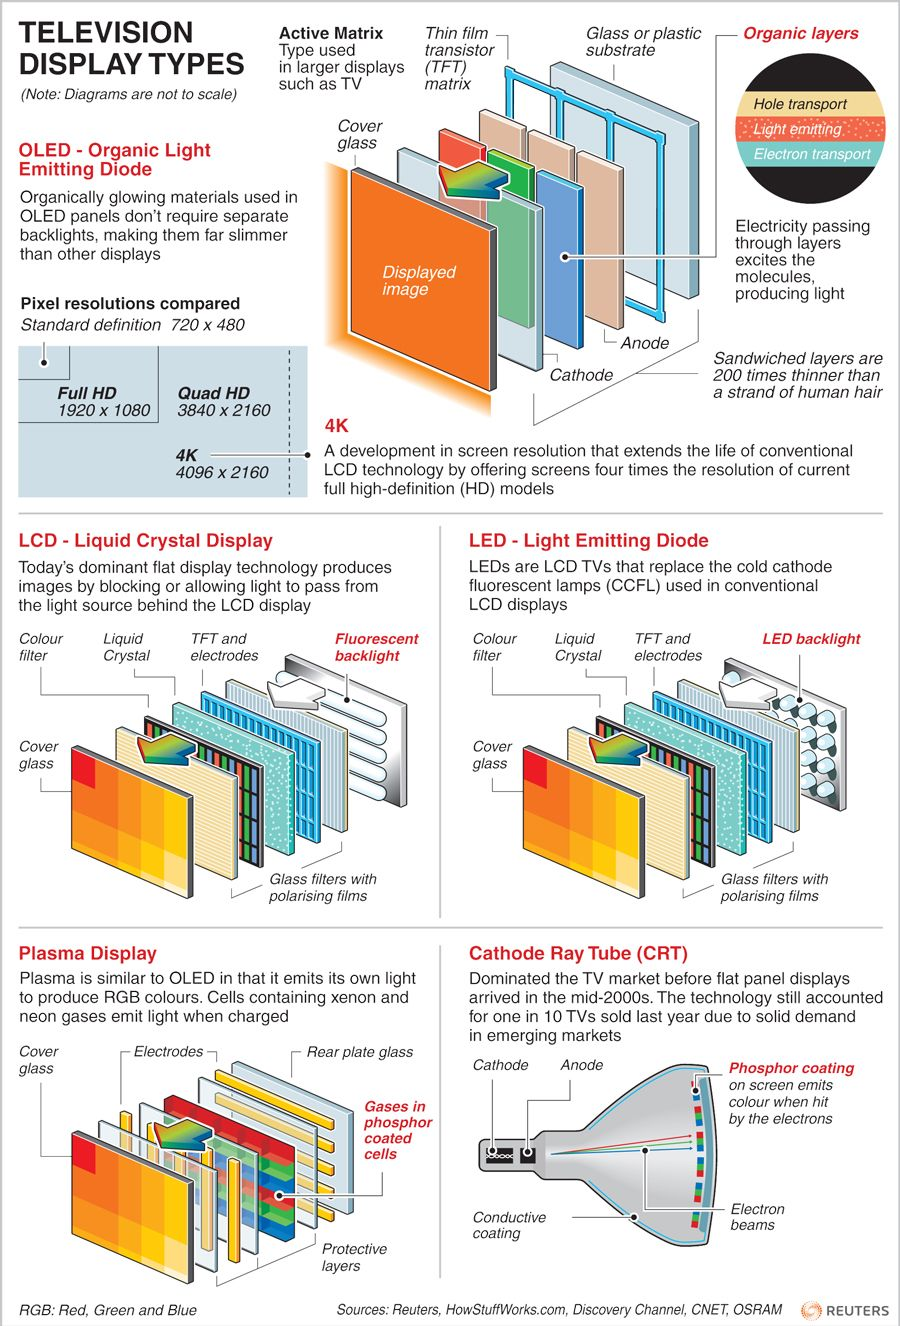 television display types how it works for oled lcd led plasma and crt tvs via reuters april 2012 [ 900 x 1326 Pixel ]